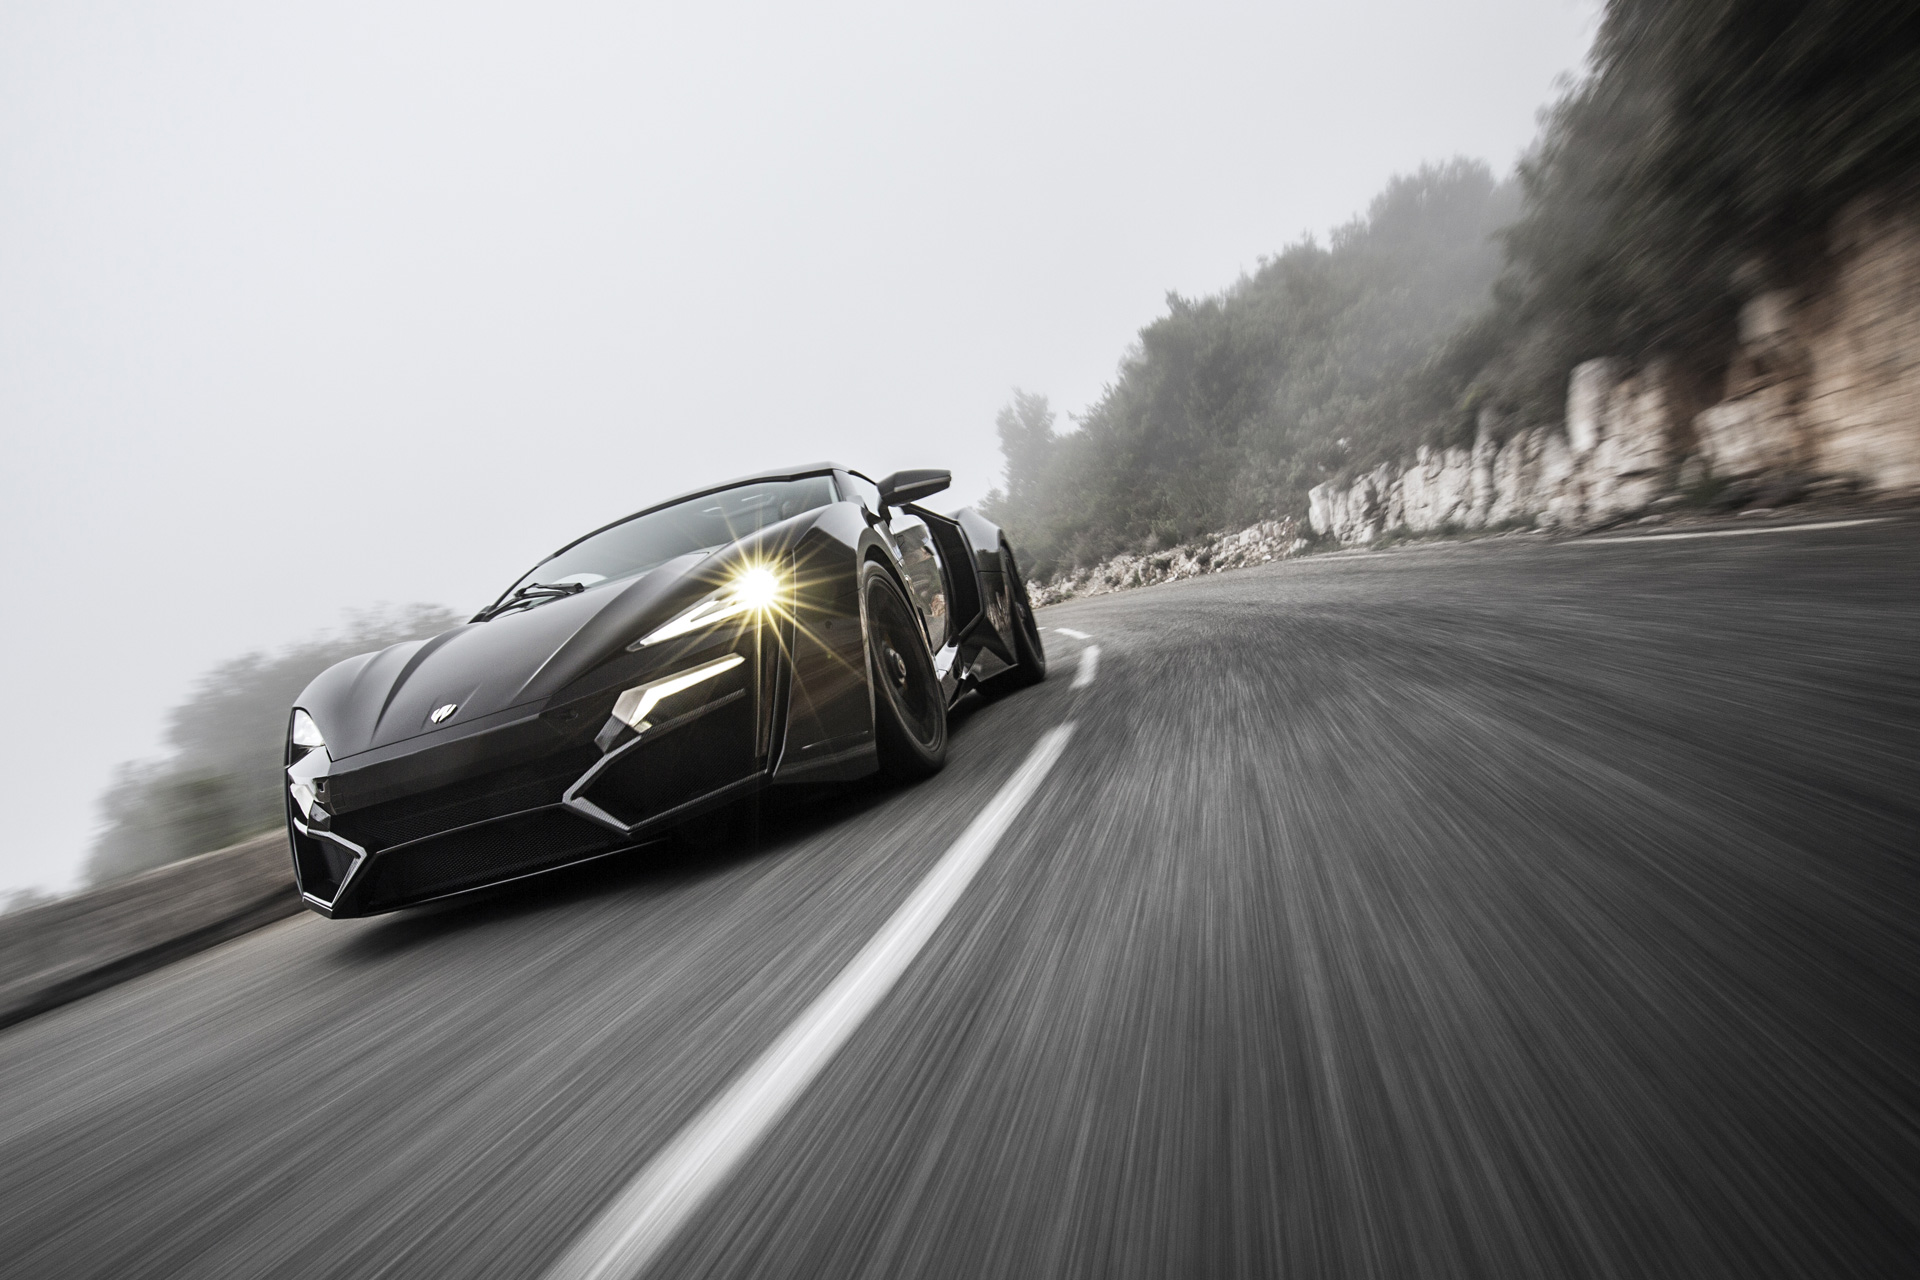 Max Speed Motors: The world's fastest cars